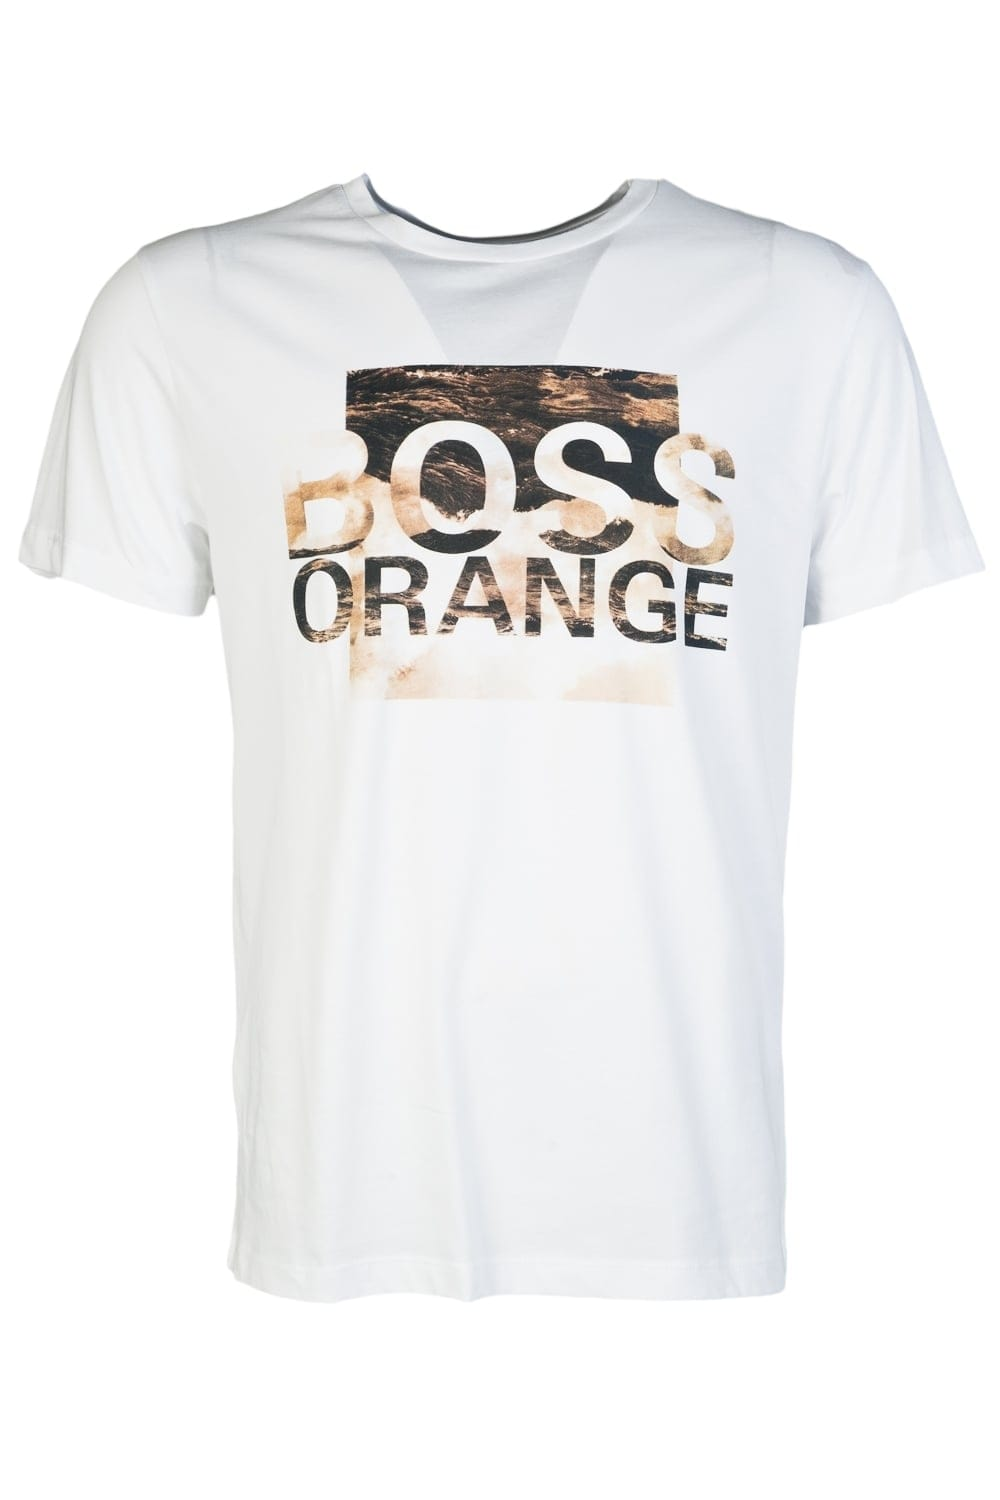 hugo boss t shirt terko 1 50315483 hugo boss orange from. Black Bedroom Furniture Sets. Home Design Ideas